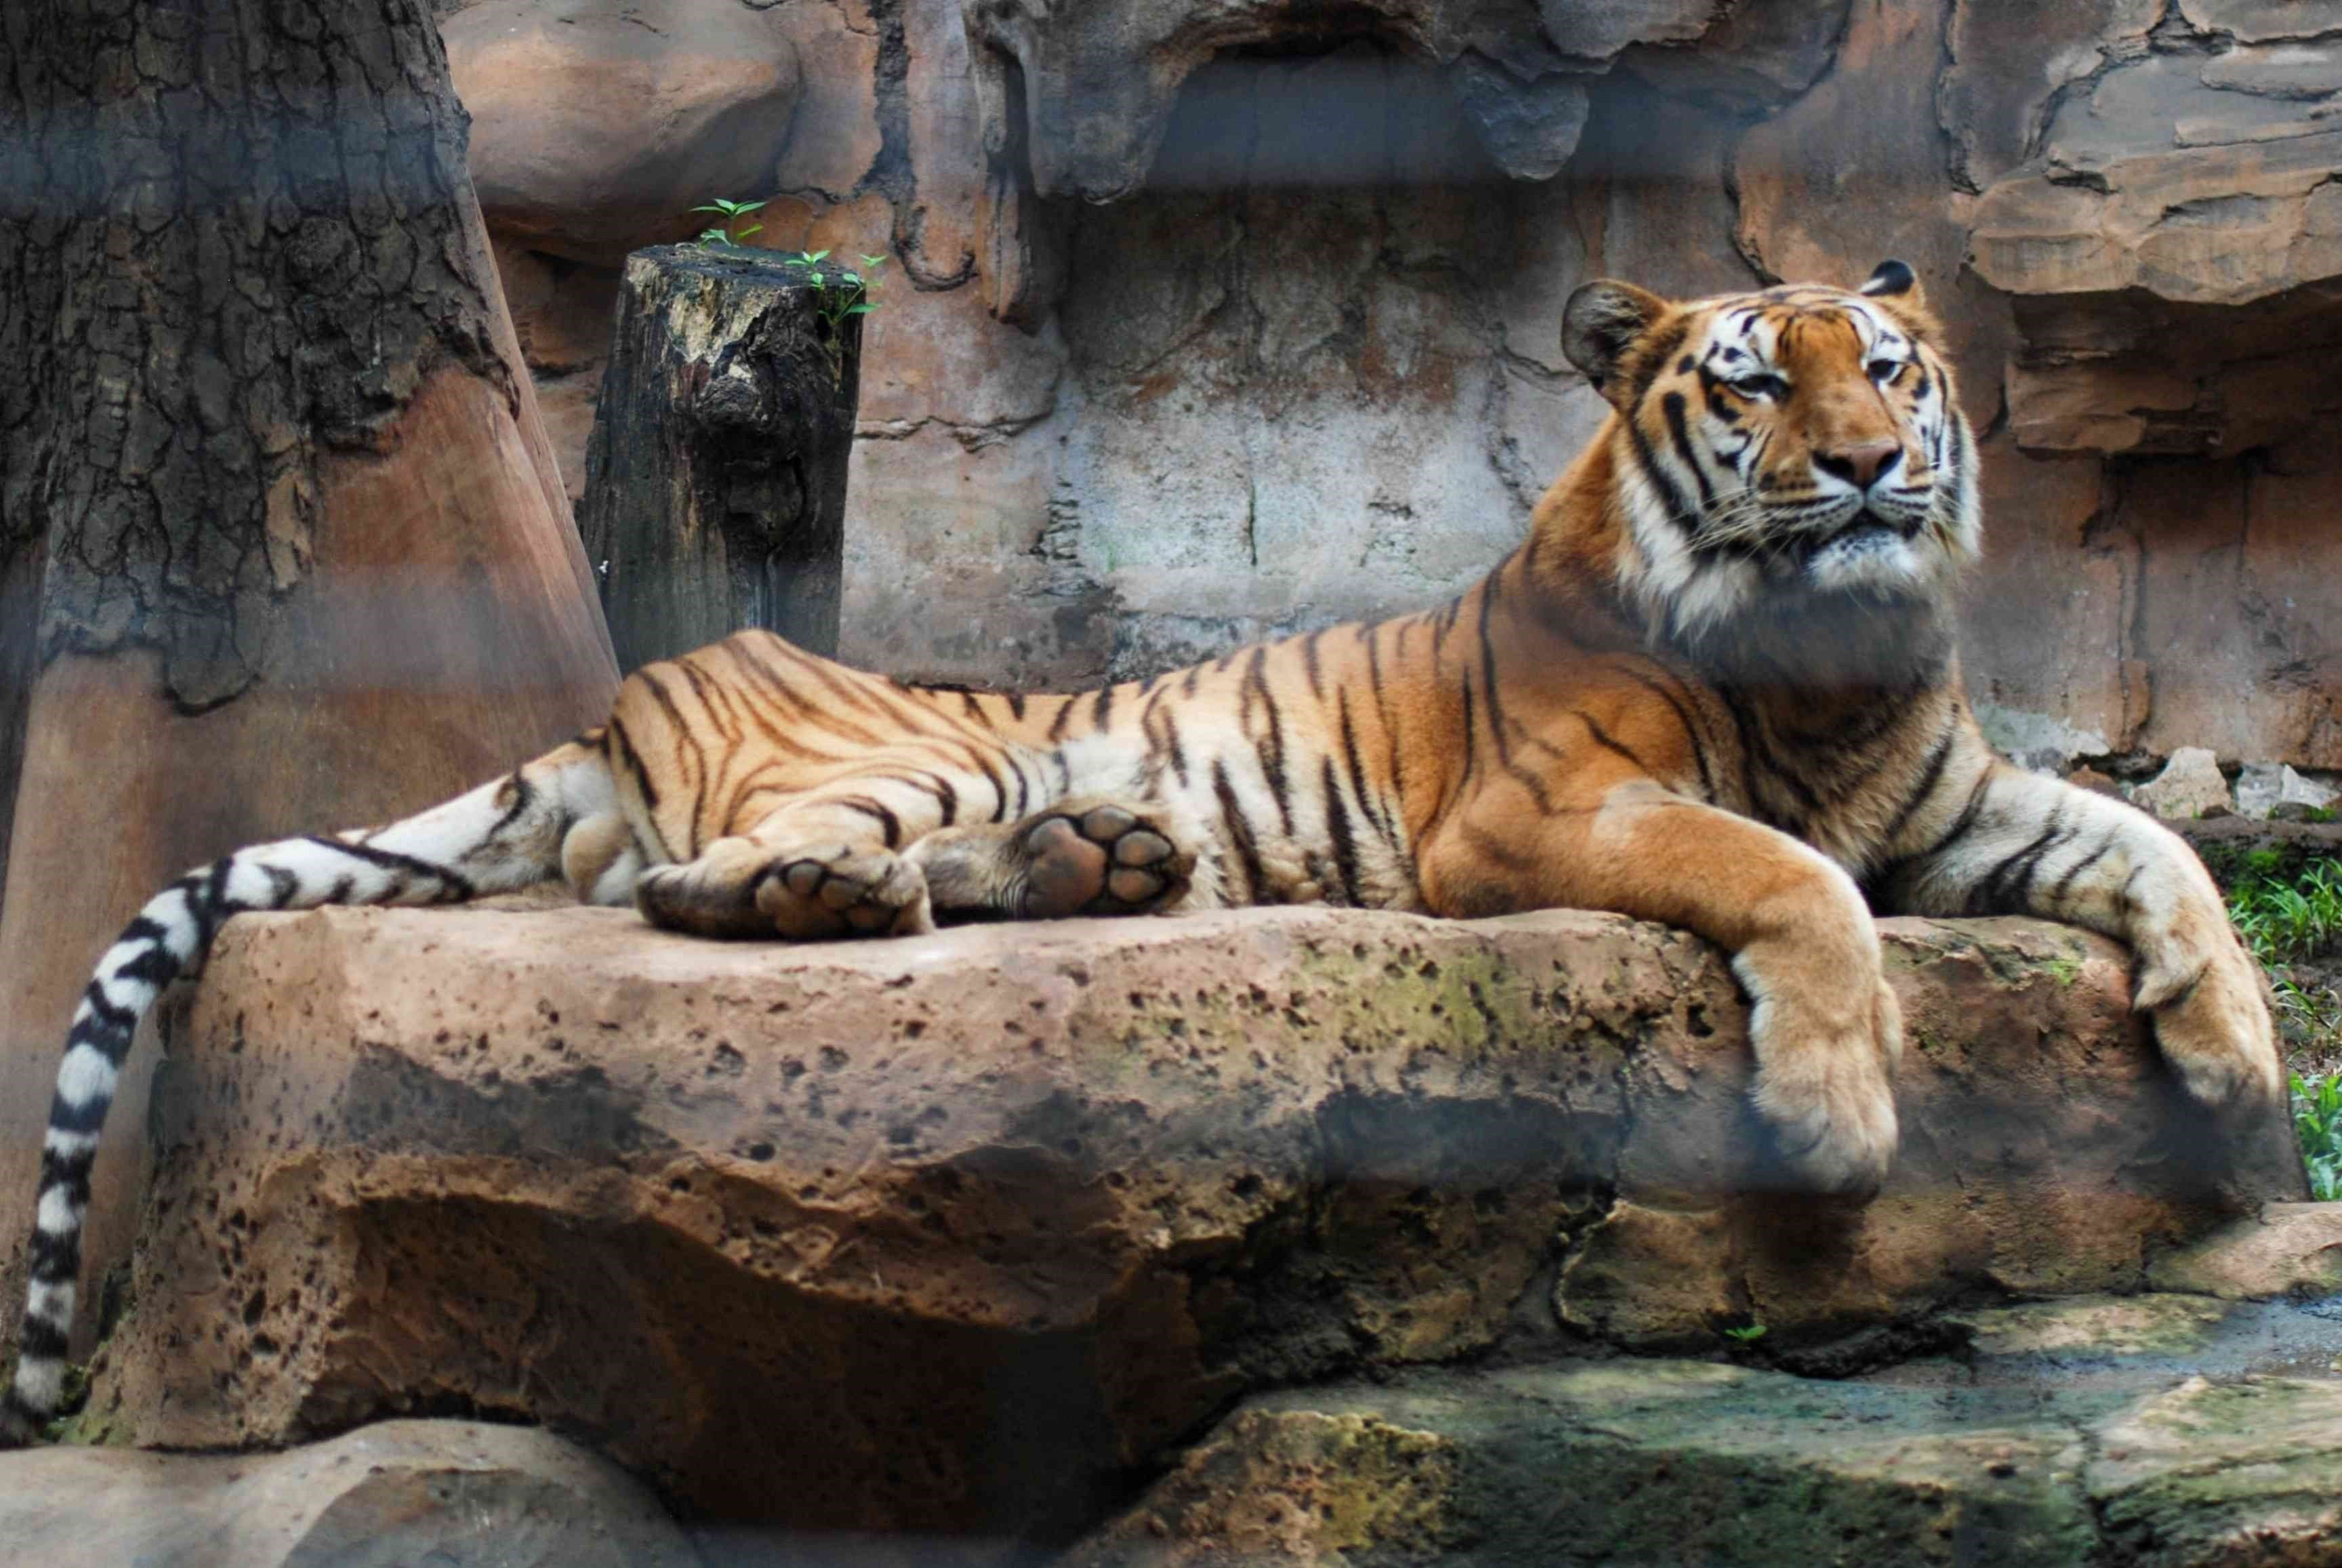 The animals may have contracted Coronavirus from a zoo guard who had the disease without showing any symptoms.